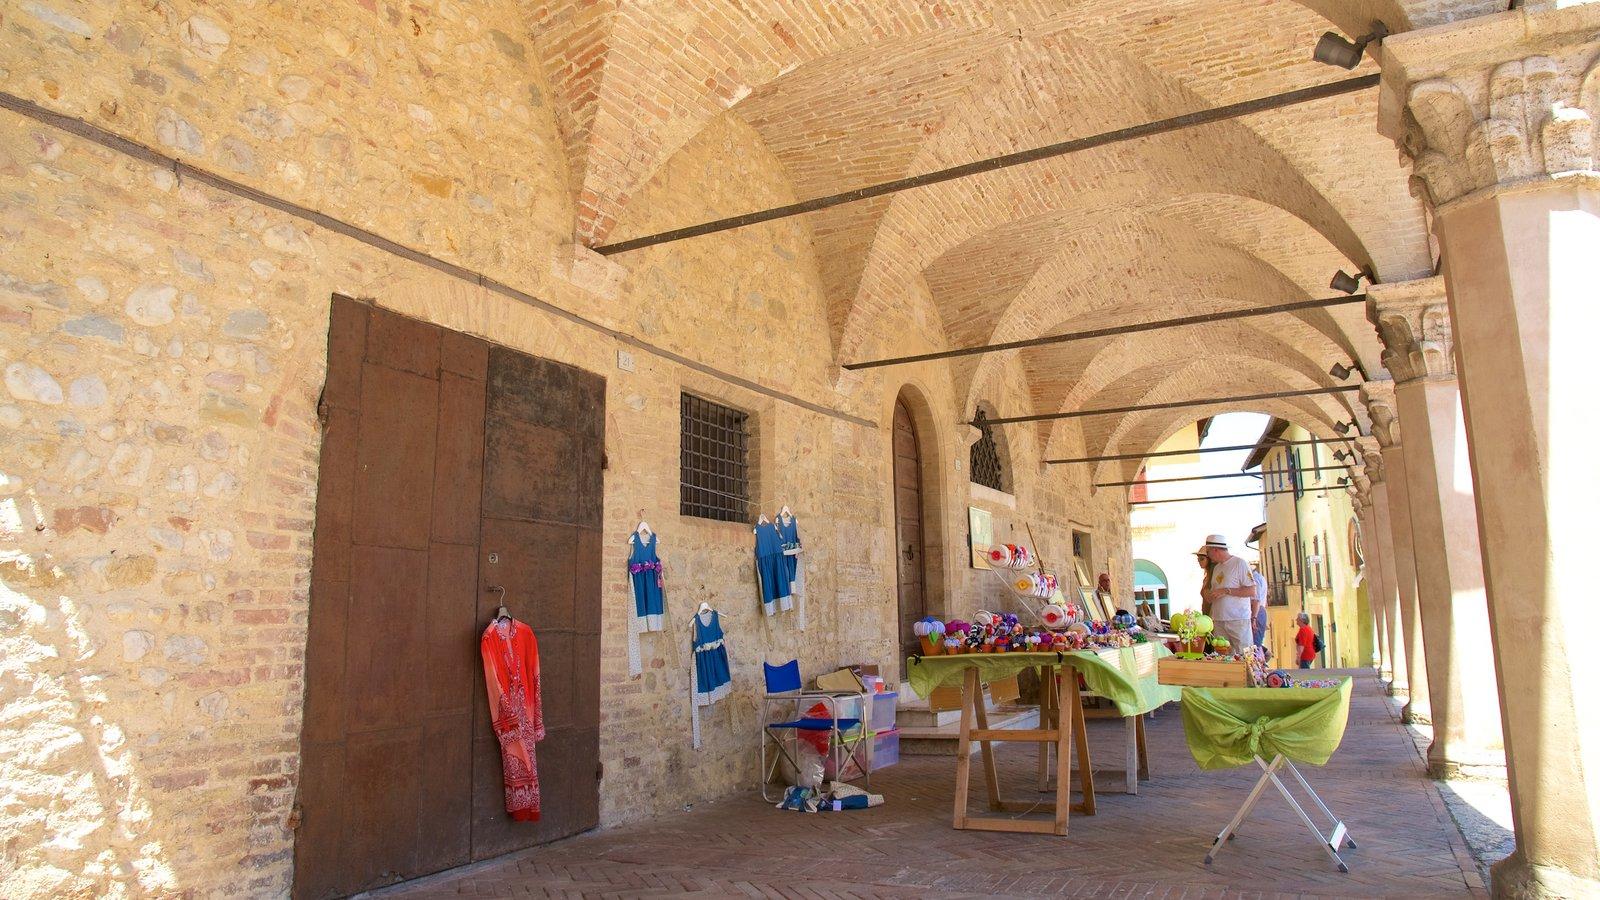 Montefalco which includes markets